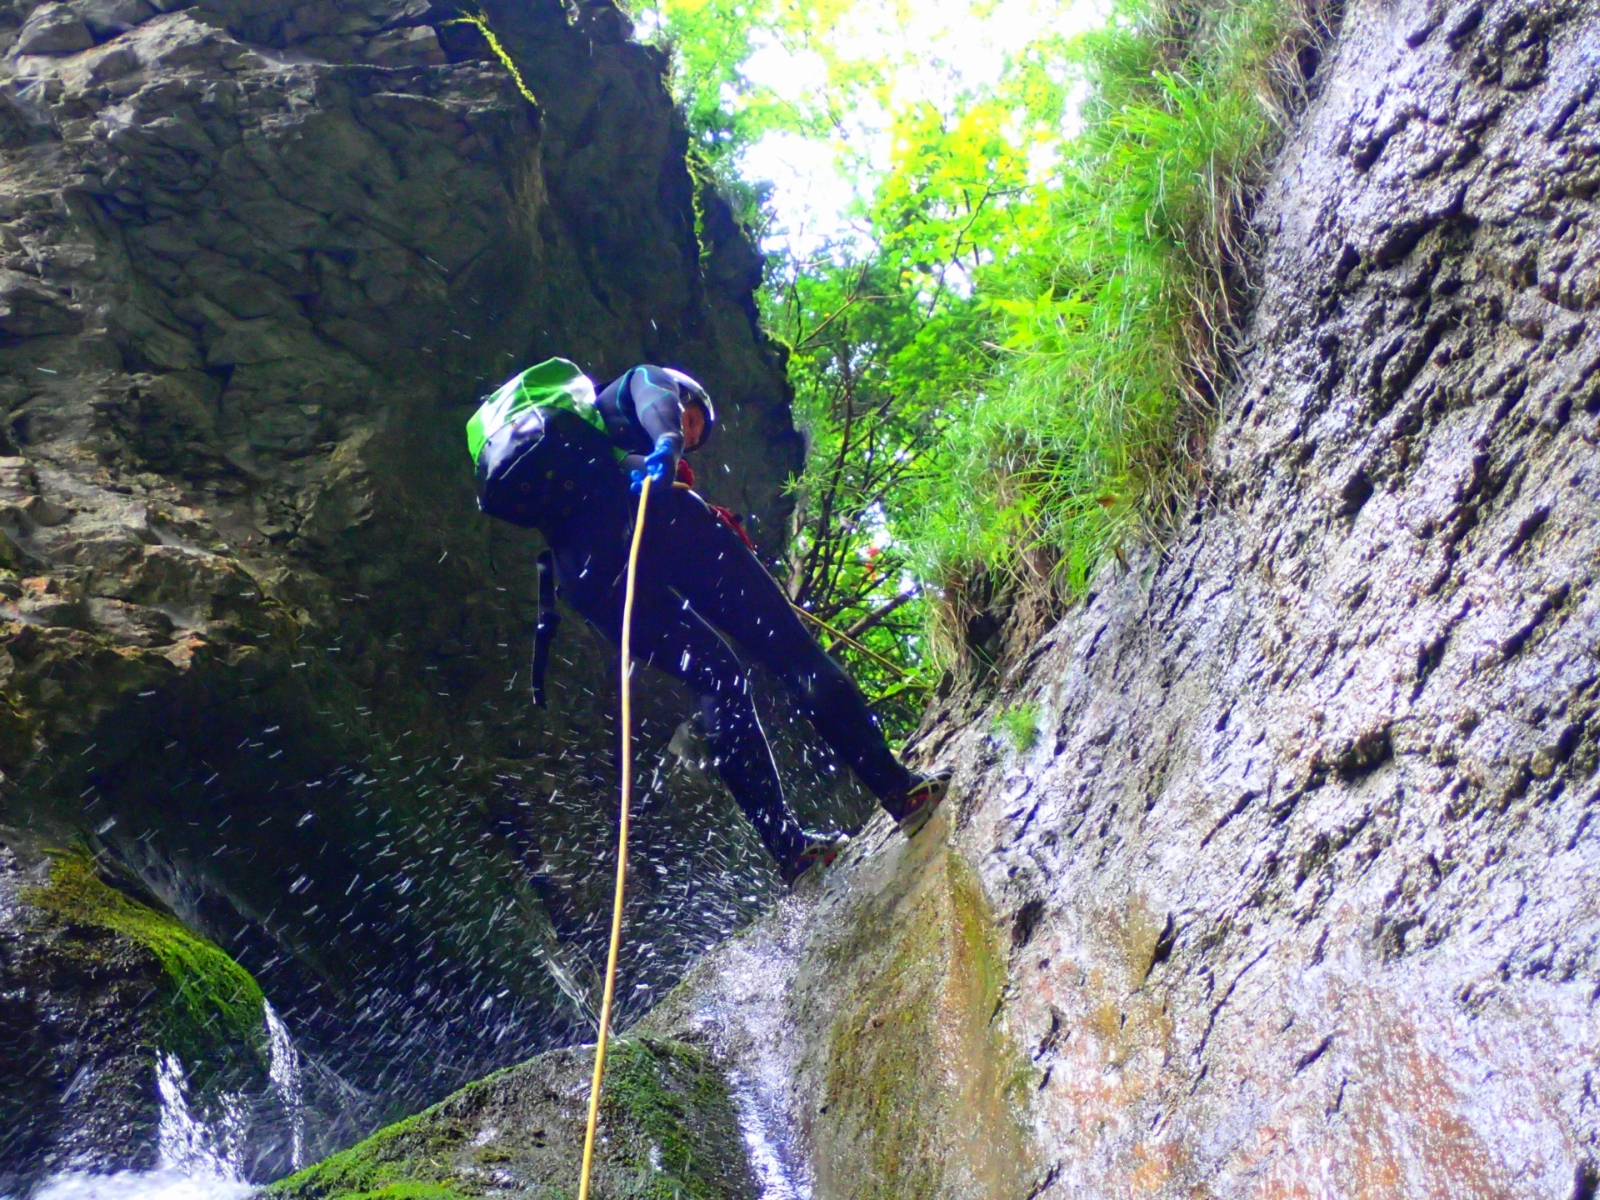 Canyoning Canionul Jgeabului - Adventure Center